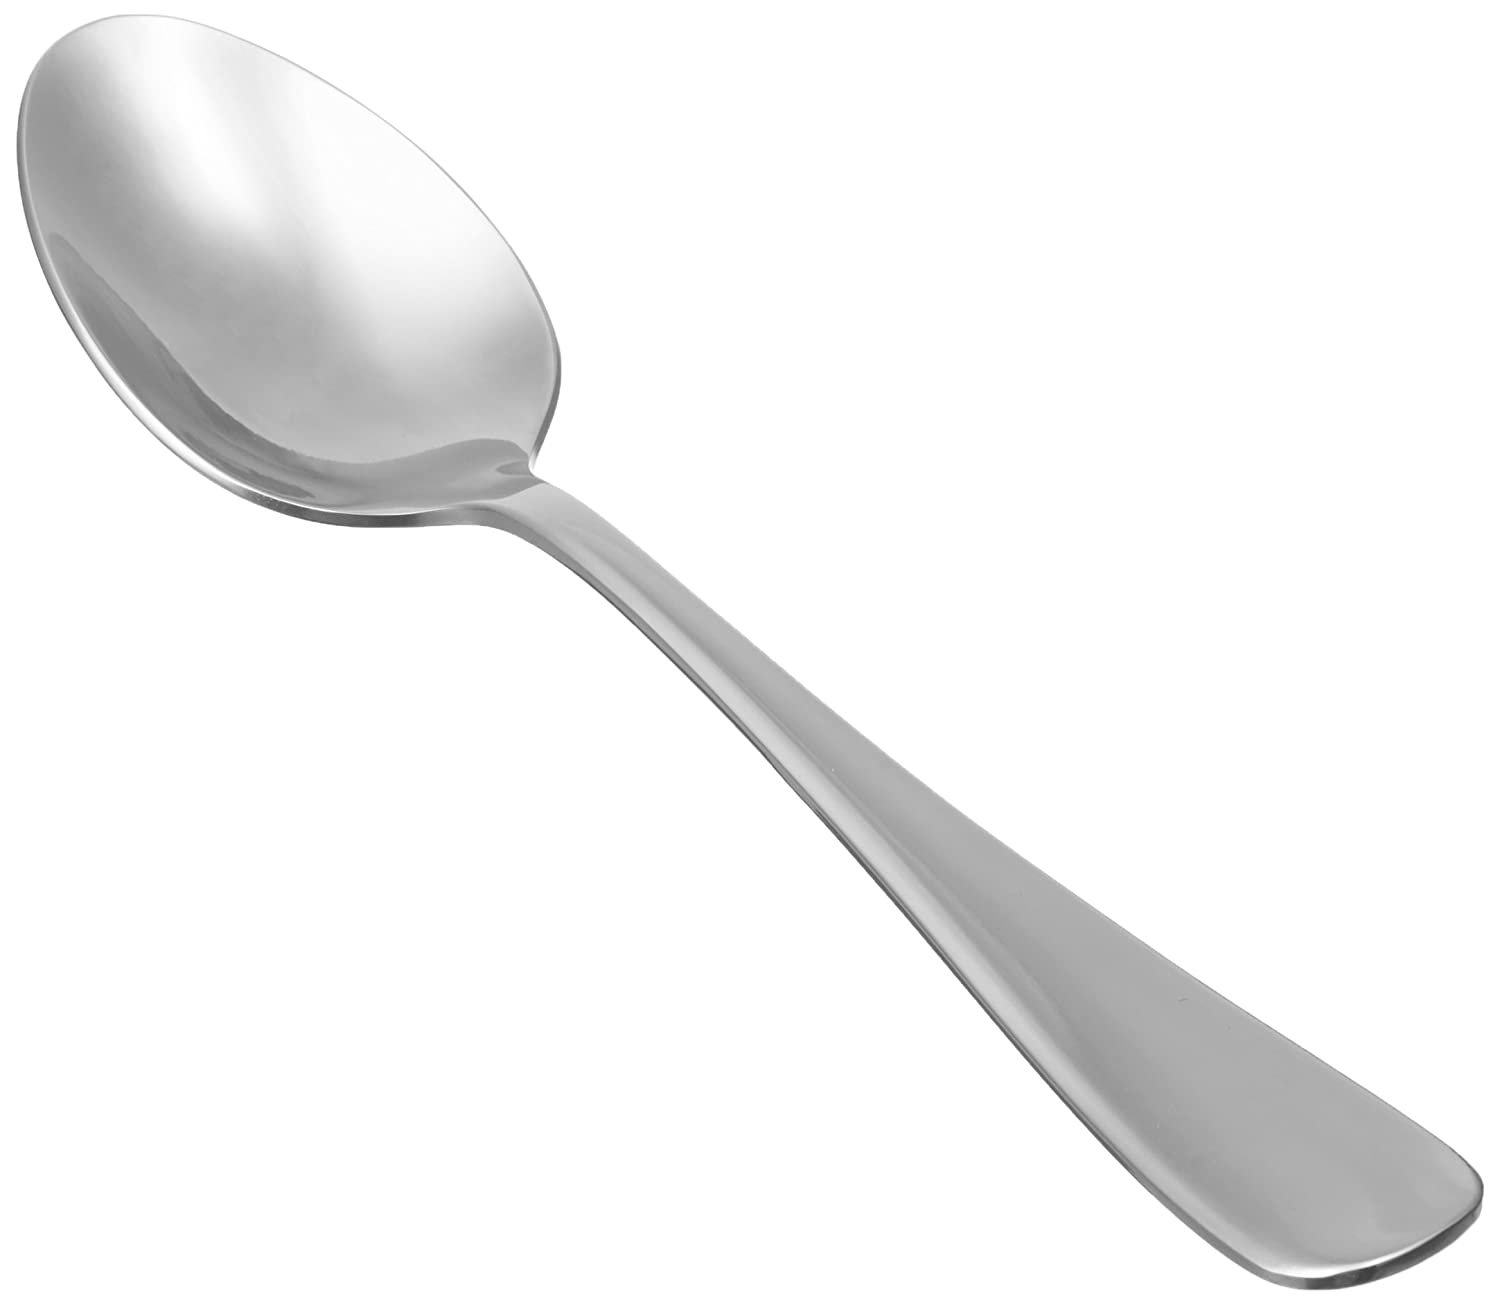 AmazonBasics Stainless Steel Dinner Spoons with Round Edge, Pack of 12